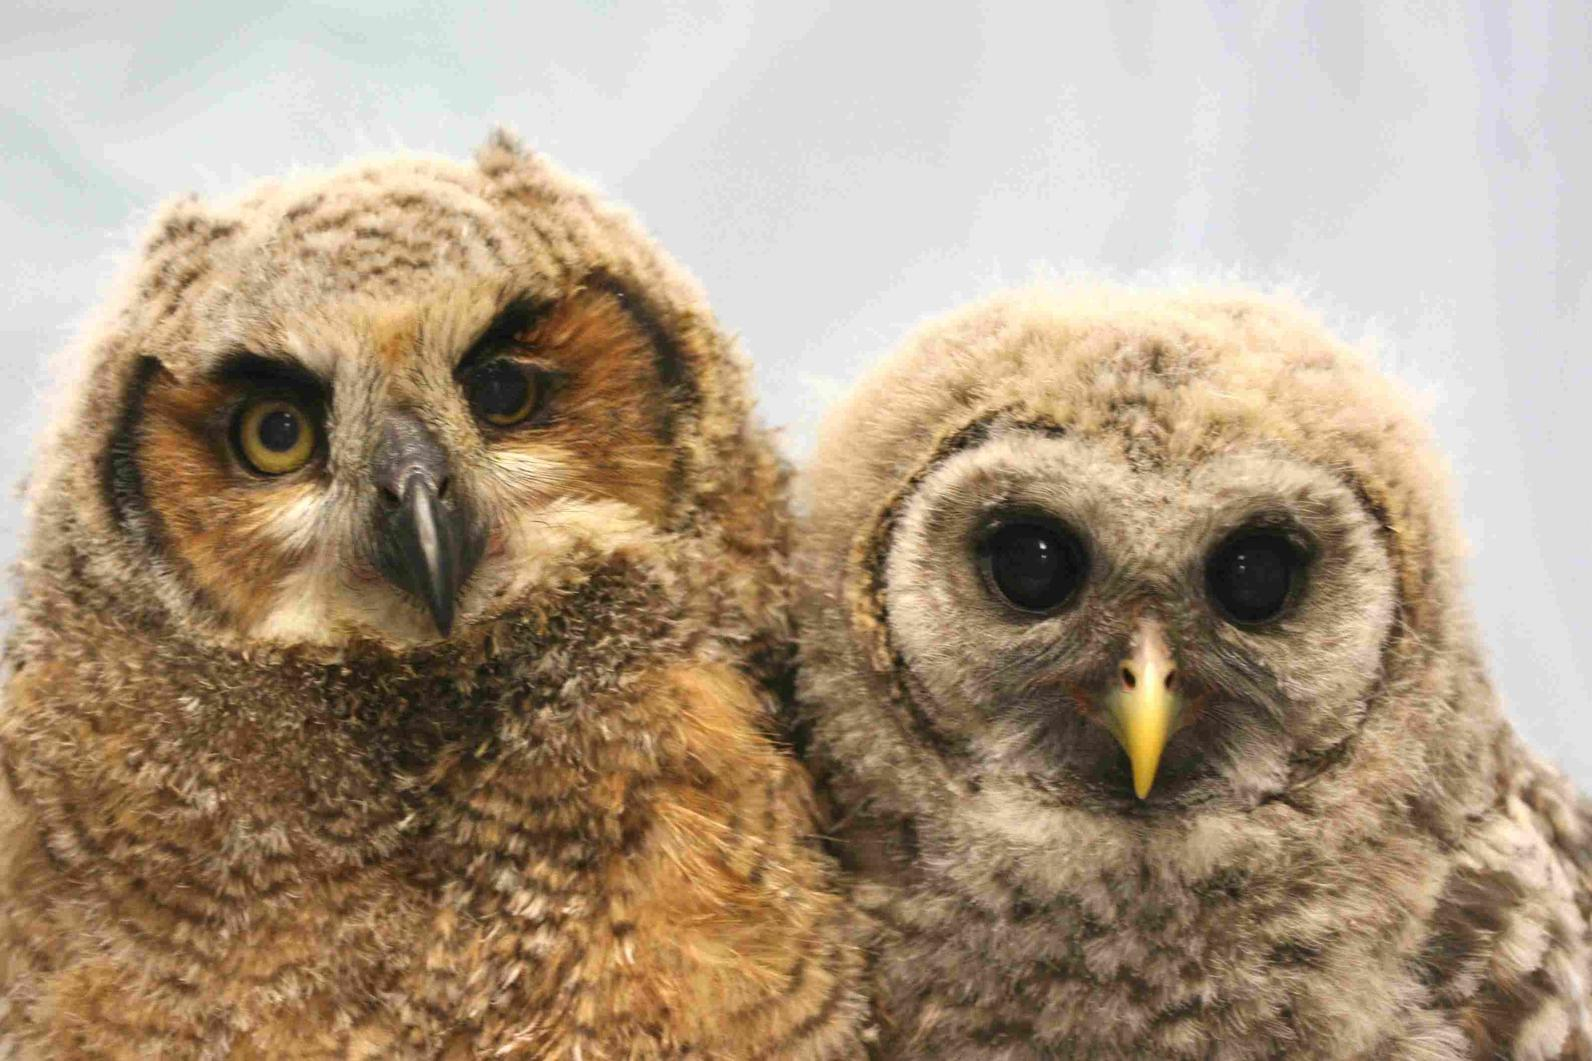 Photo of bay Great Horned owl and baby Barred Owl